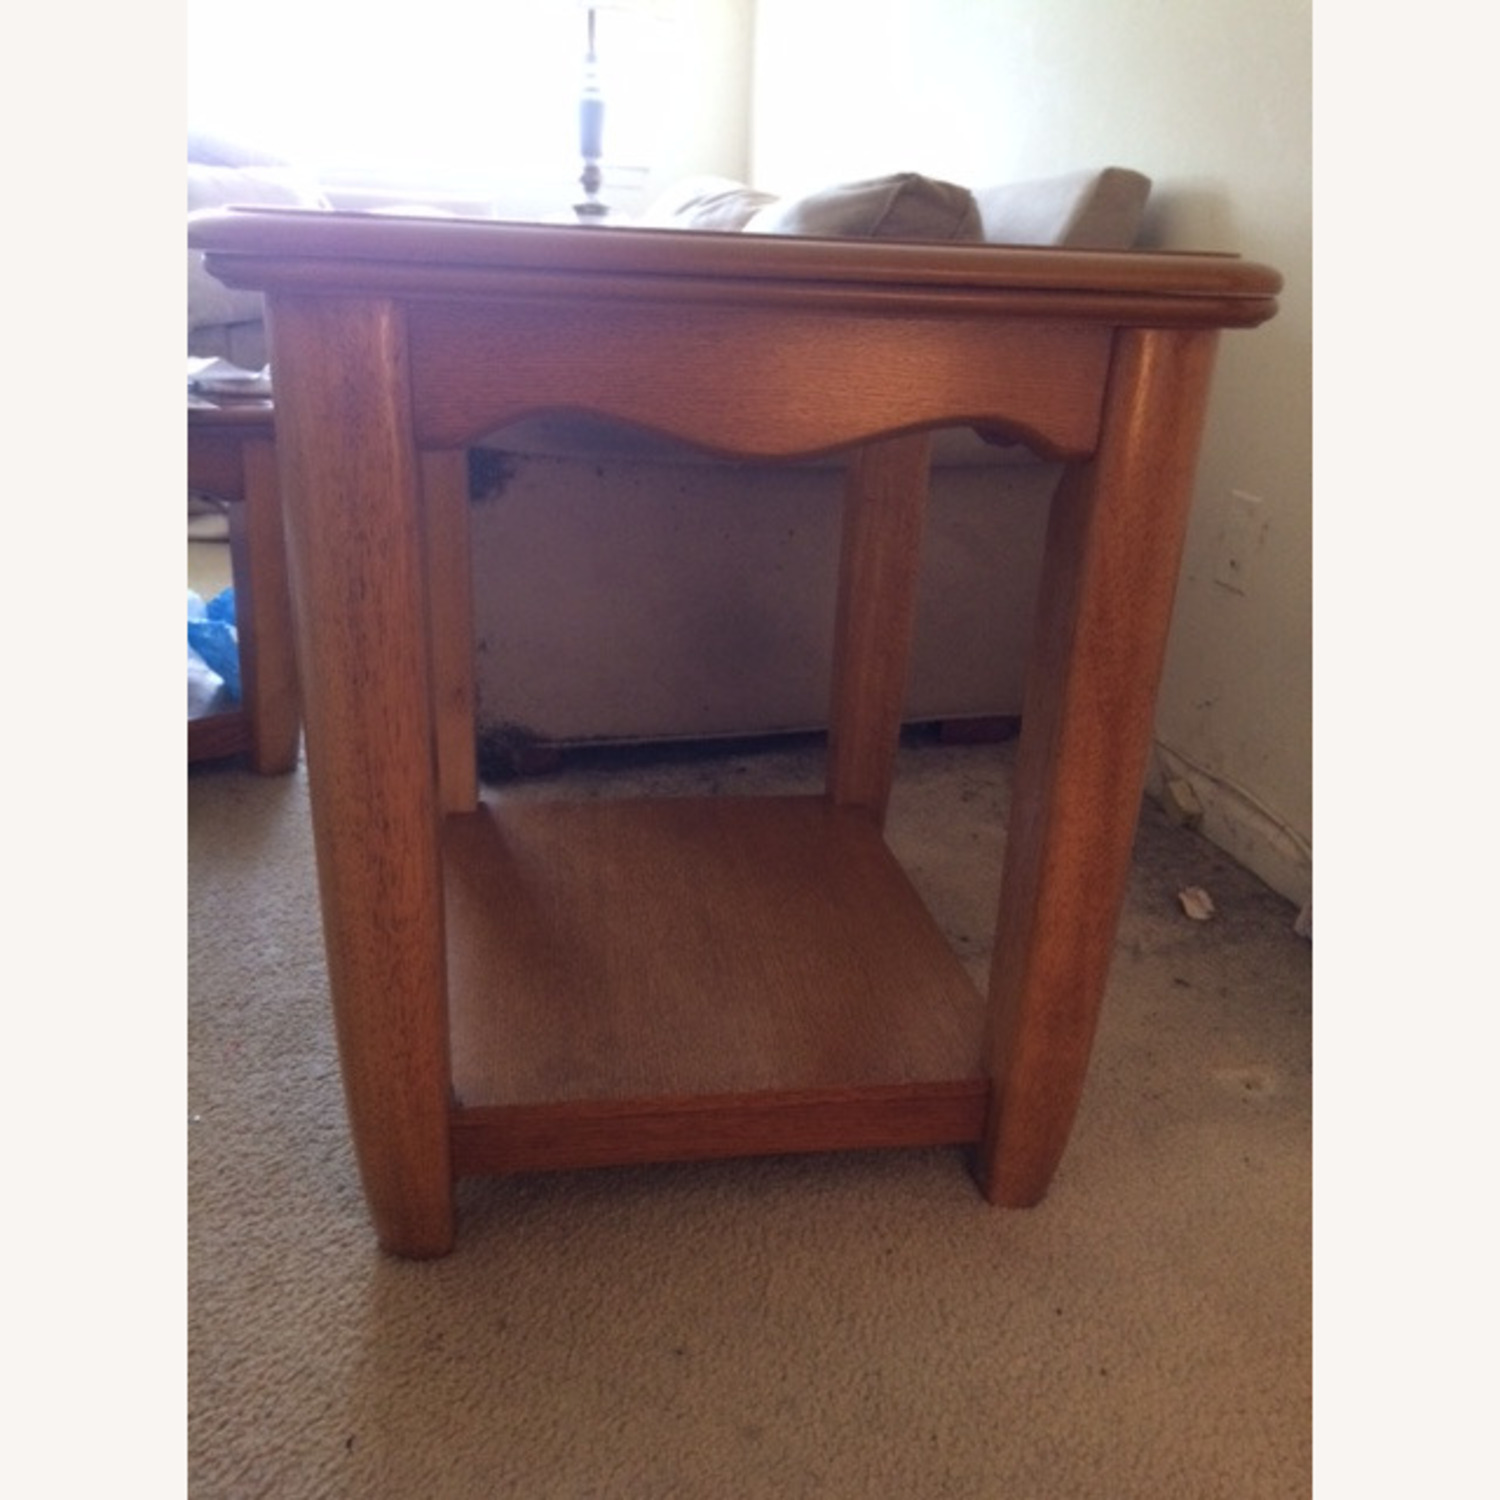 Oak End Table/Side Table with Sliding Panel - image-5